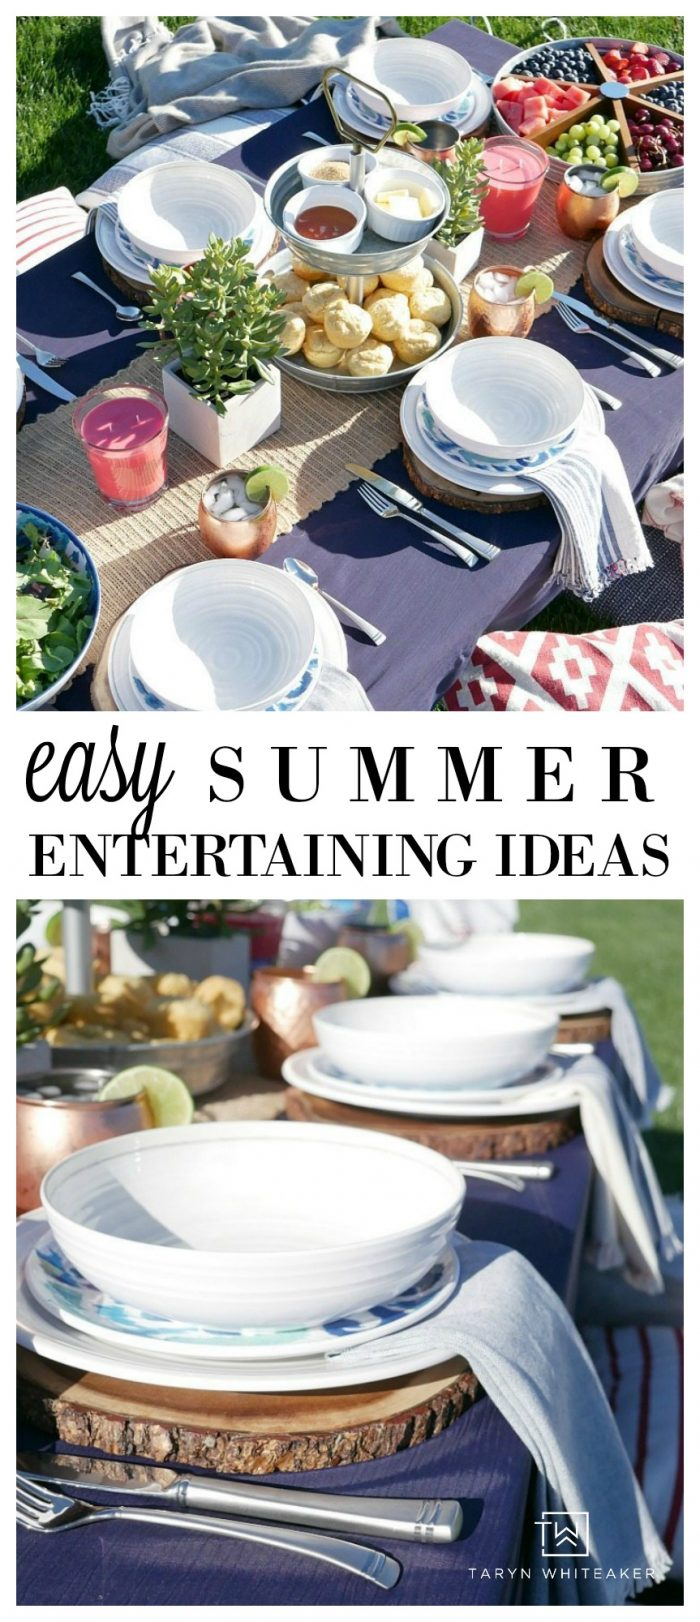 Easy Summer Entertaining Ideas - Tons of Tips For A Backyard Gathering